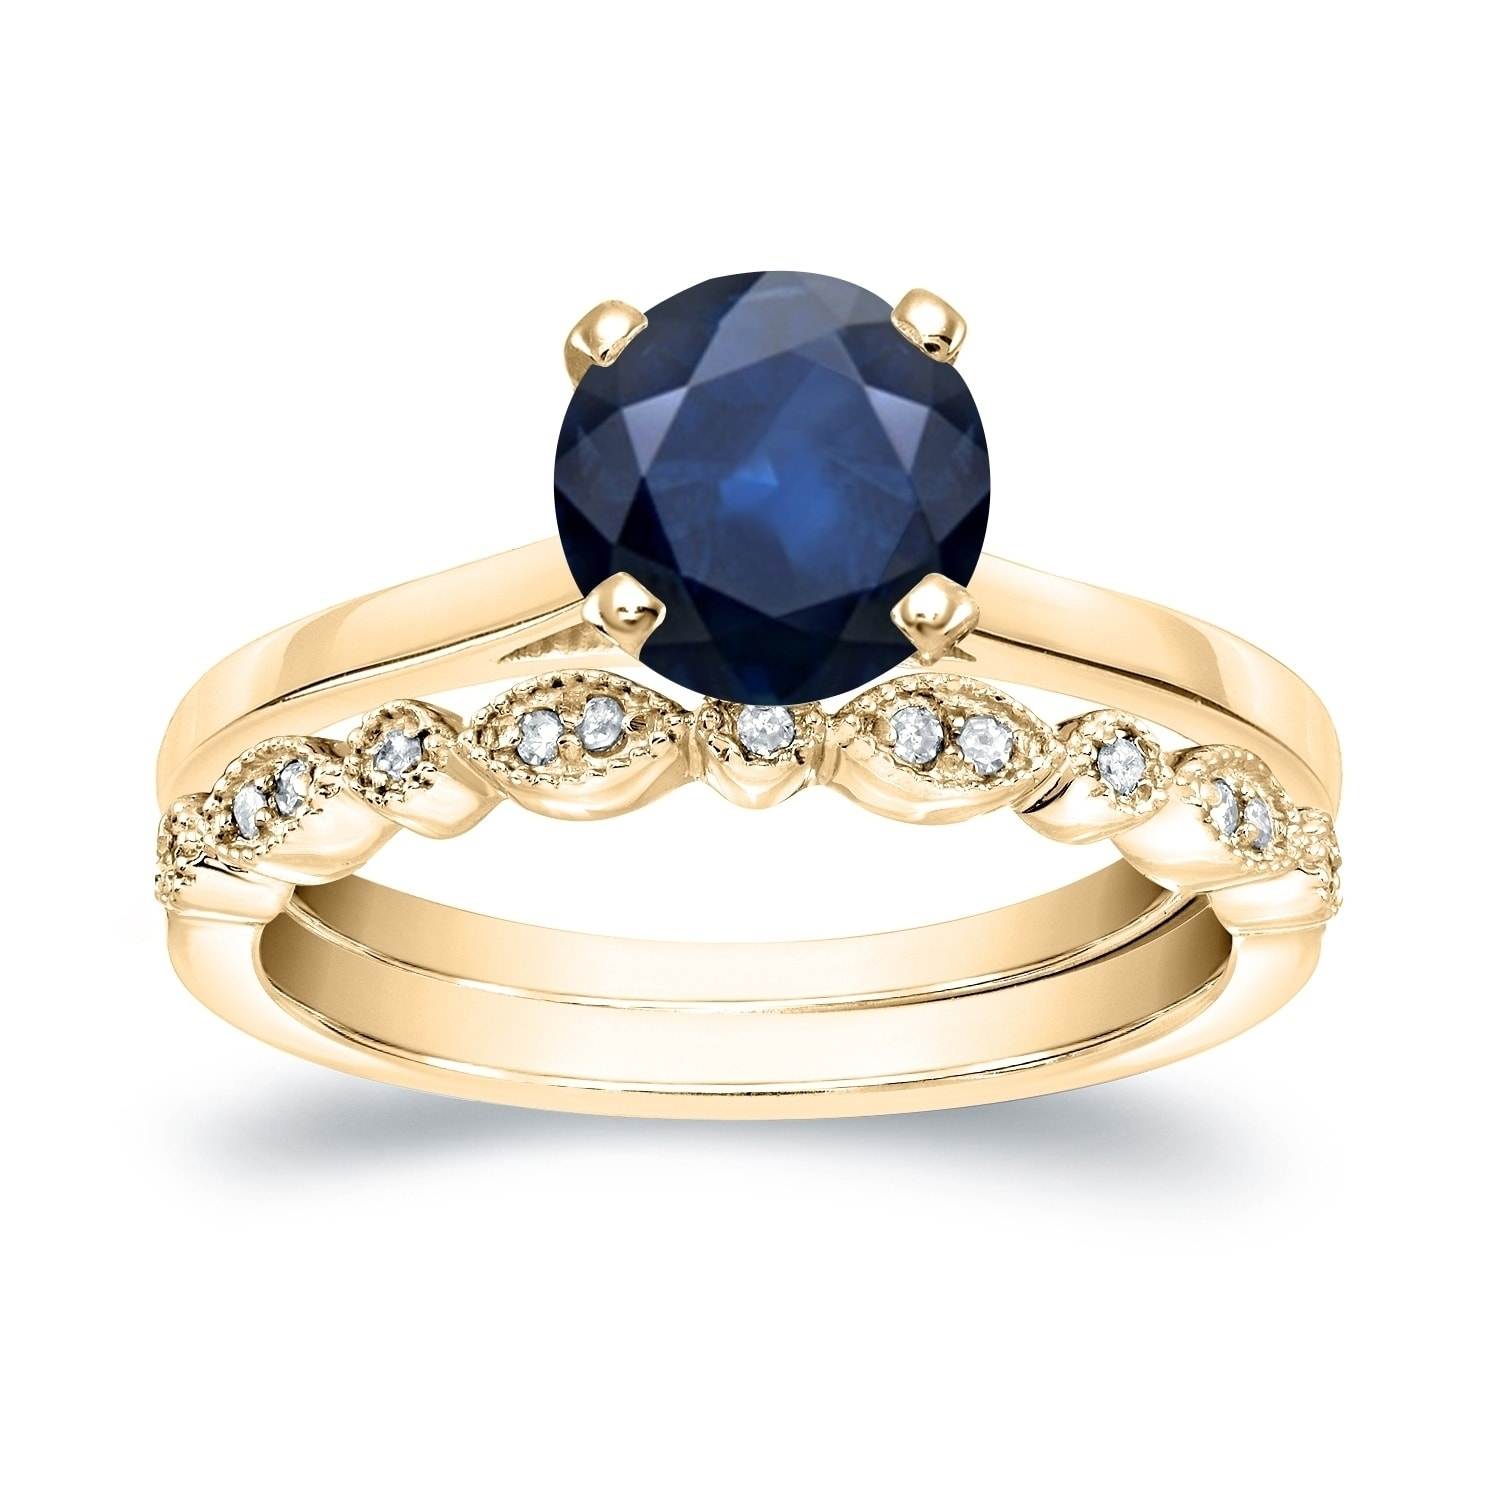 Shop Auriya 14K Gold Stackable Vintage 1Ct Blue Sapphire Solitaire Throughout Most Current Vintage Style Yellow Gold Engagement Rings (View 10 of 15)